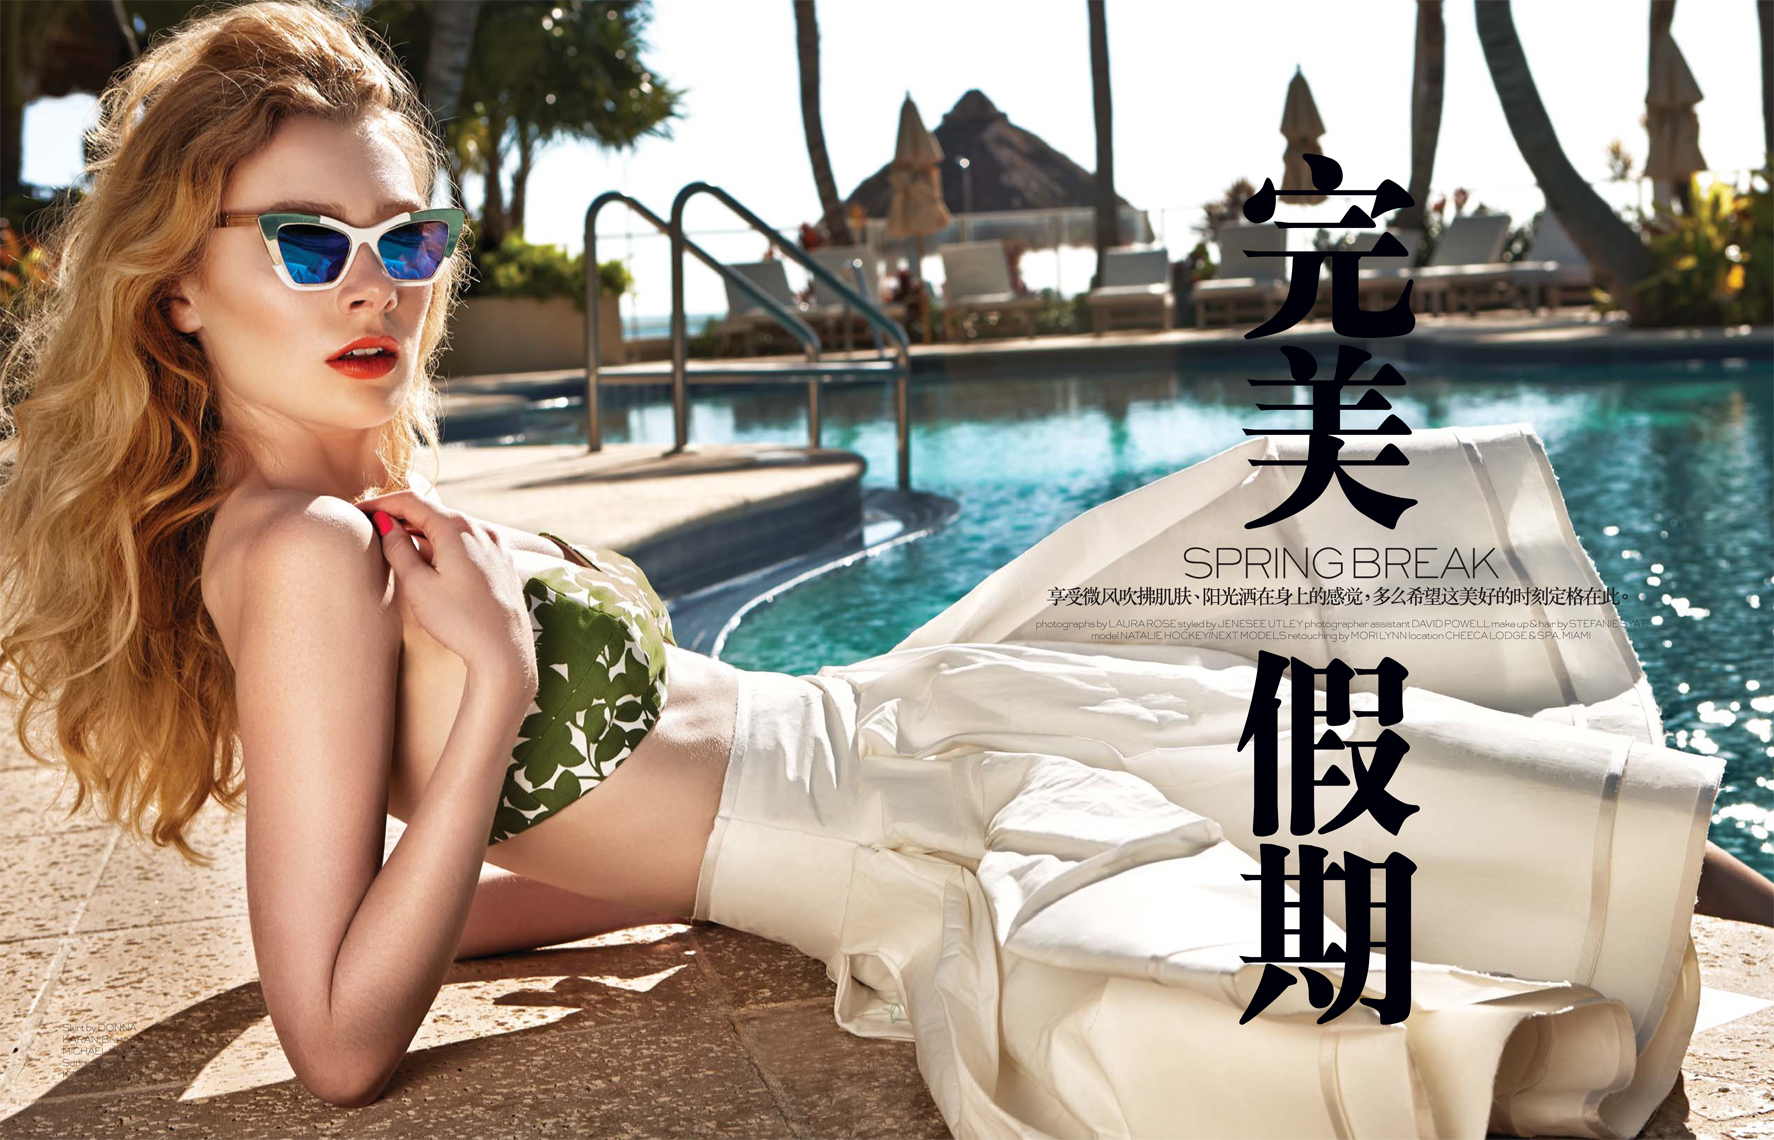 web130-141*0414_FASHIONSPREAD-1.jpg